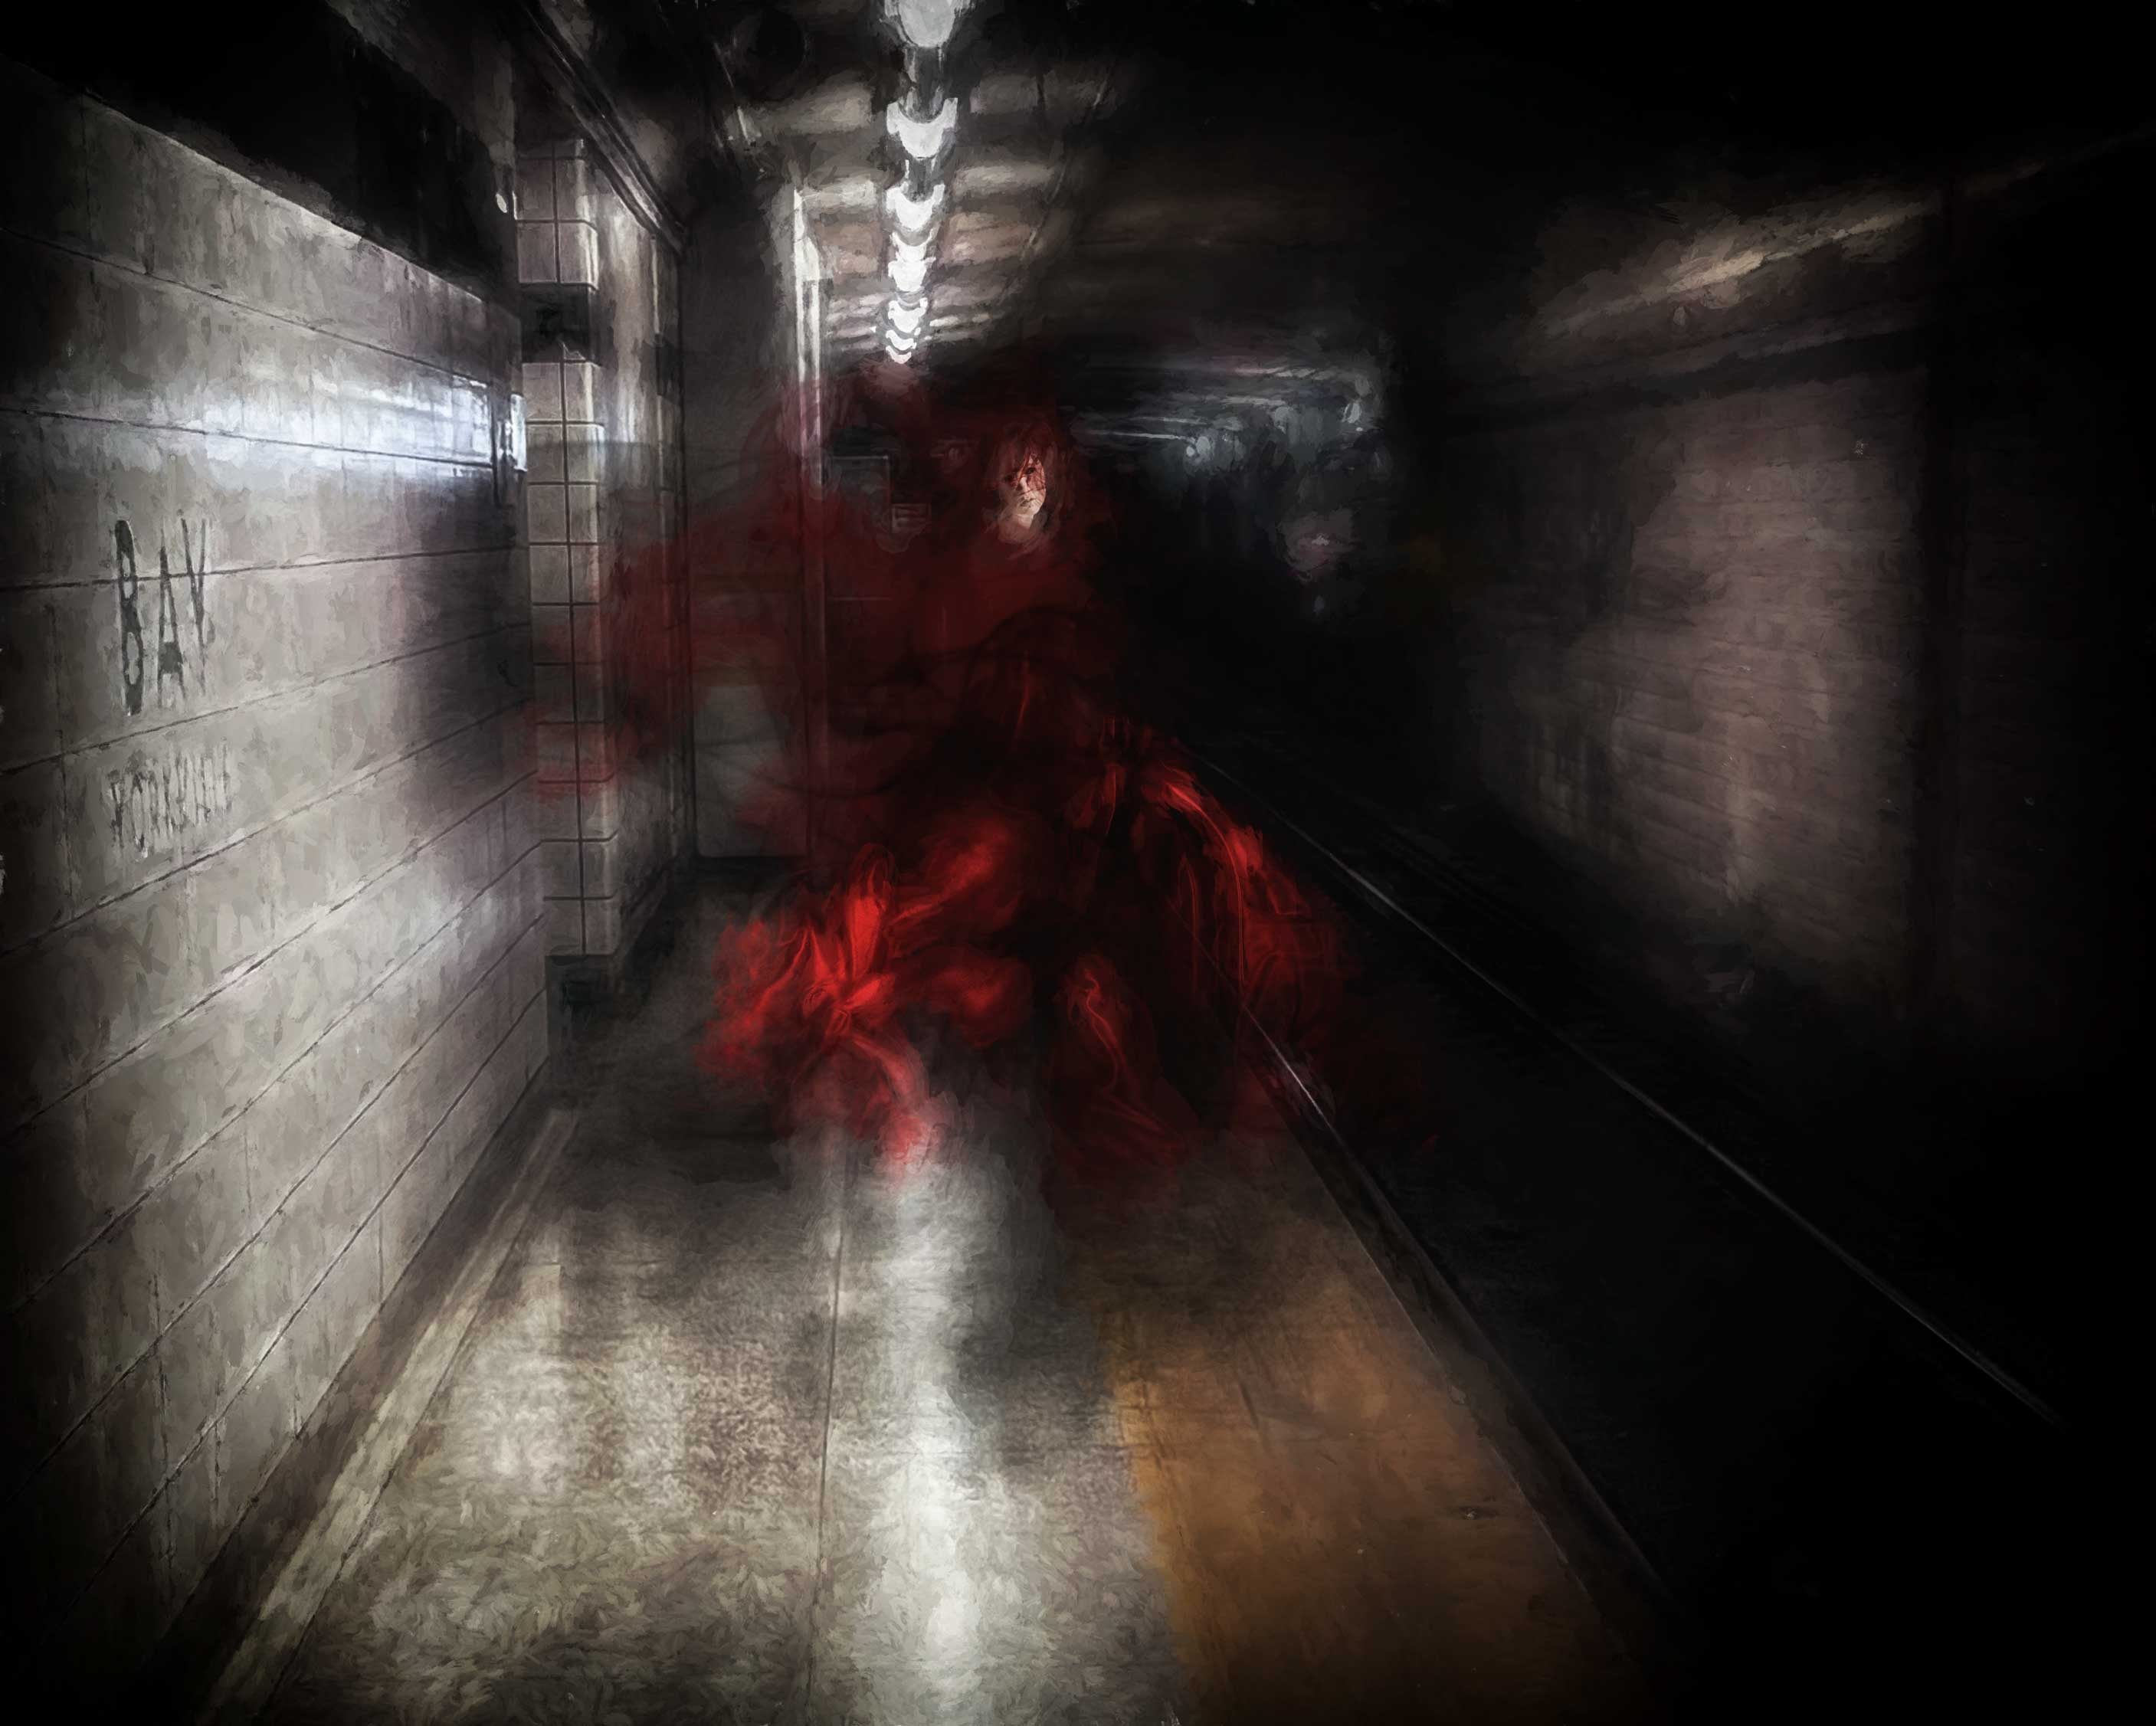 """They-Say... """"Lady in Red"""" of the Lower Bay subway tunnel, Toronto"""